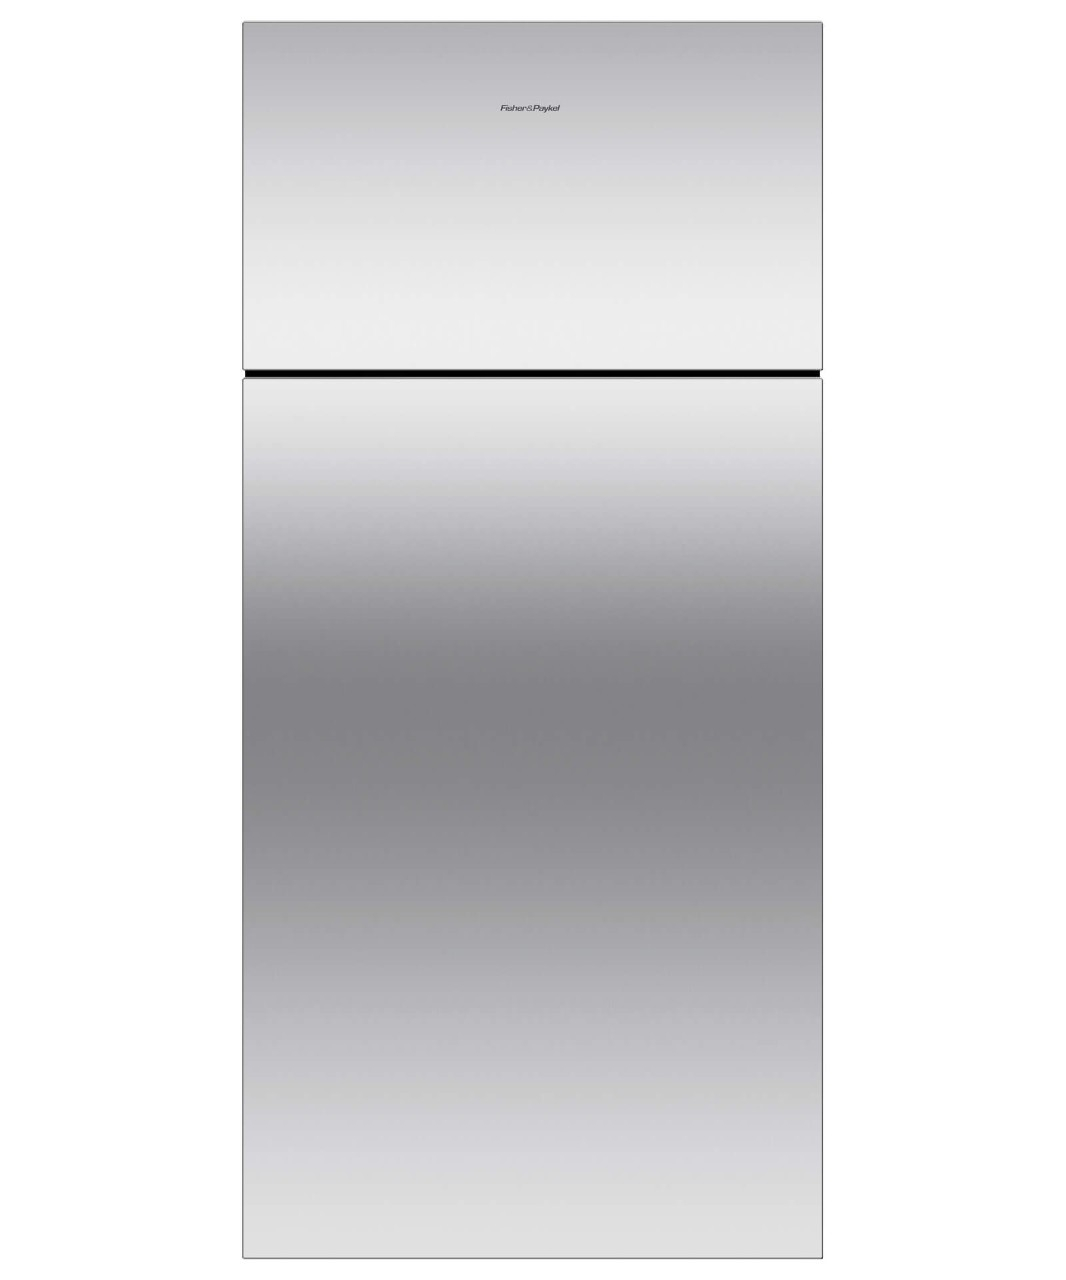 Rf521trpx6 Fisher Paykel Activesmart Fridge 790mm Top Freezer